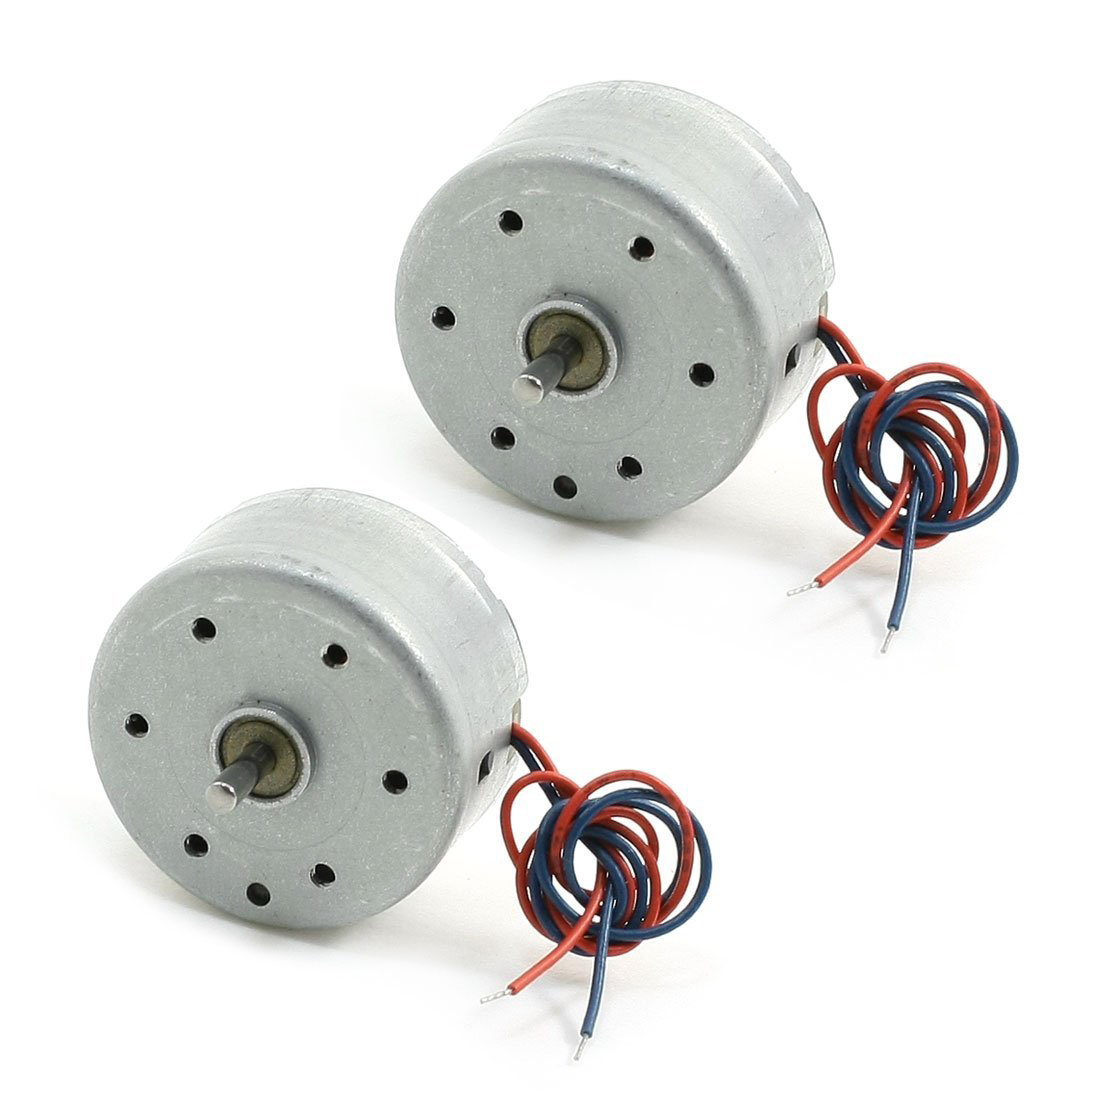 2PCS RC300 6000RPM <font><b>DC</b></font> 1.5-<font><b>9V</b></font> Micro <font><b>Motor</b></font> for CD DVD Player Dropshipping image